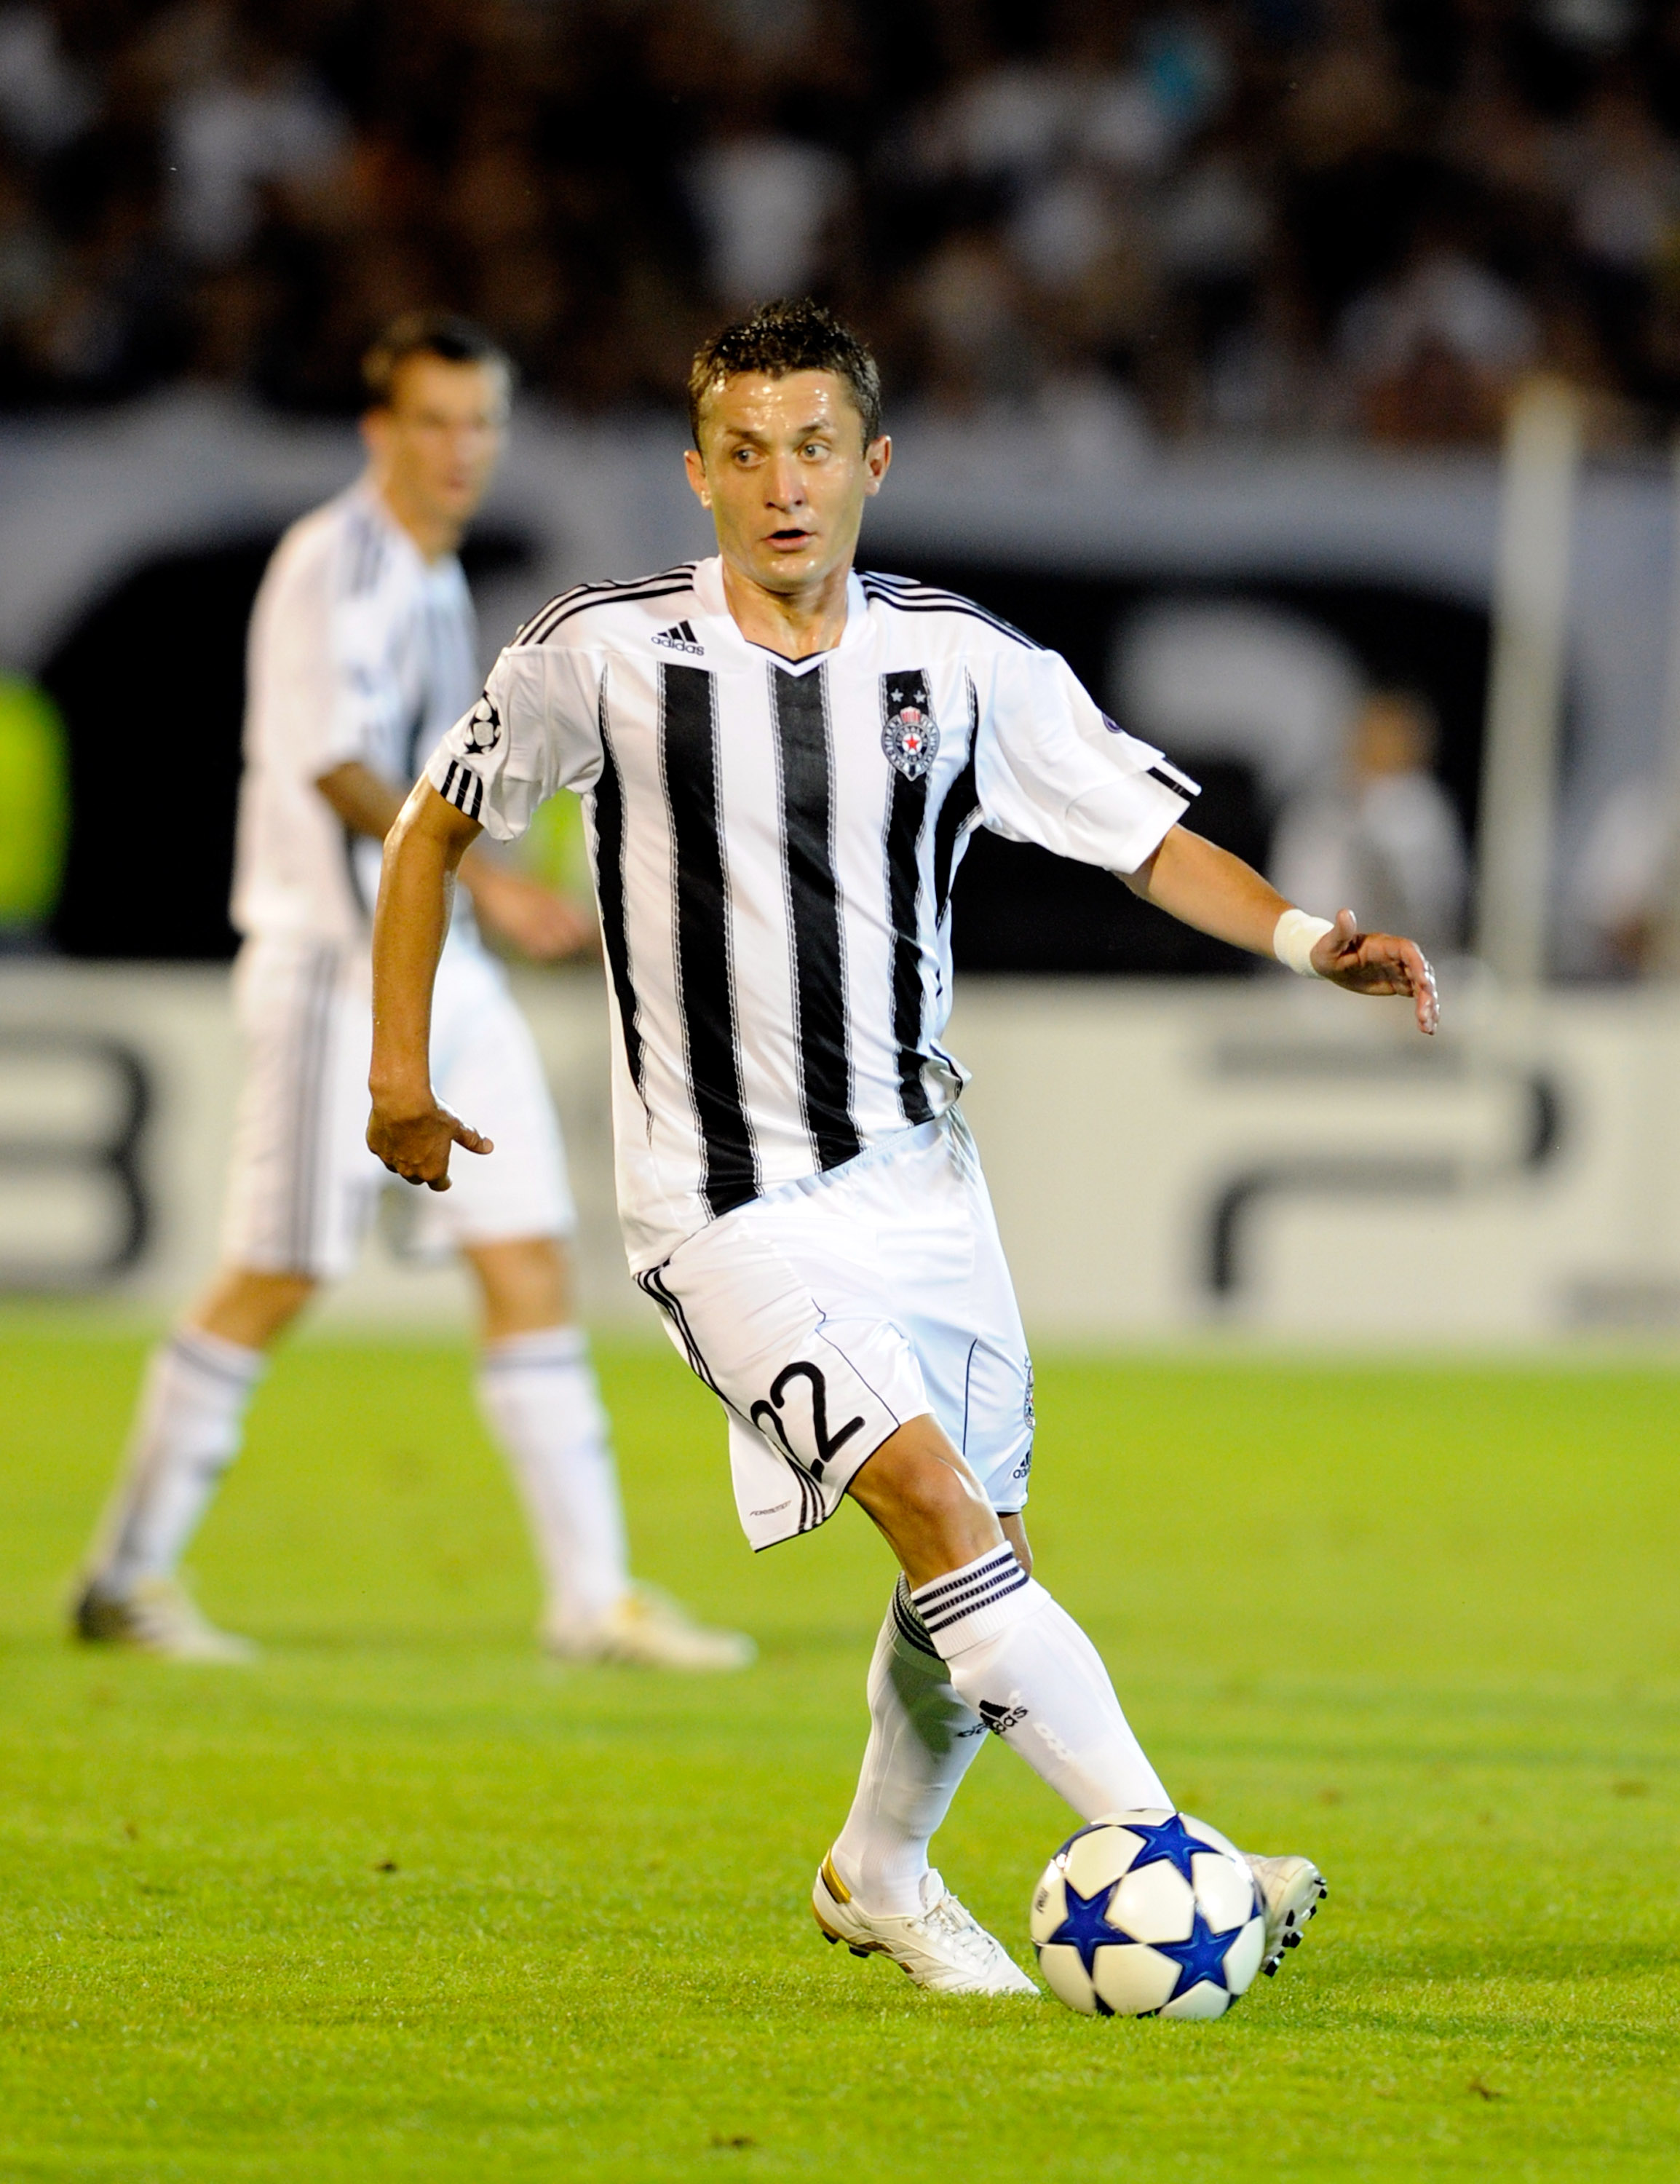 BELGRADE, SERBIA - AUGUST 18:  Sasa Ilic of FK Partizan during the Champions League Play-off match between Partizan and Anderlecht at Partizan Stadium on August 18, 2010 in Belgrade, Serbia.  (Photo by Claudio Villa/Getty Images)